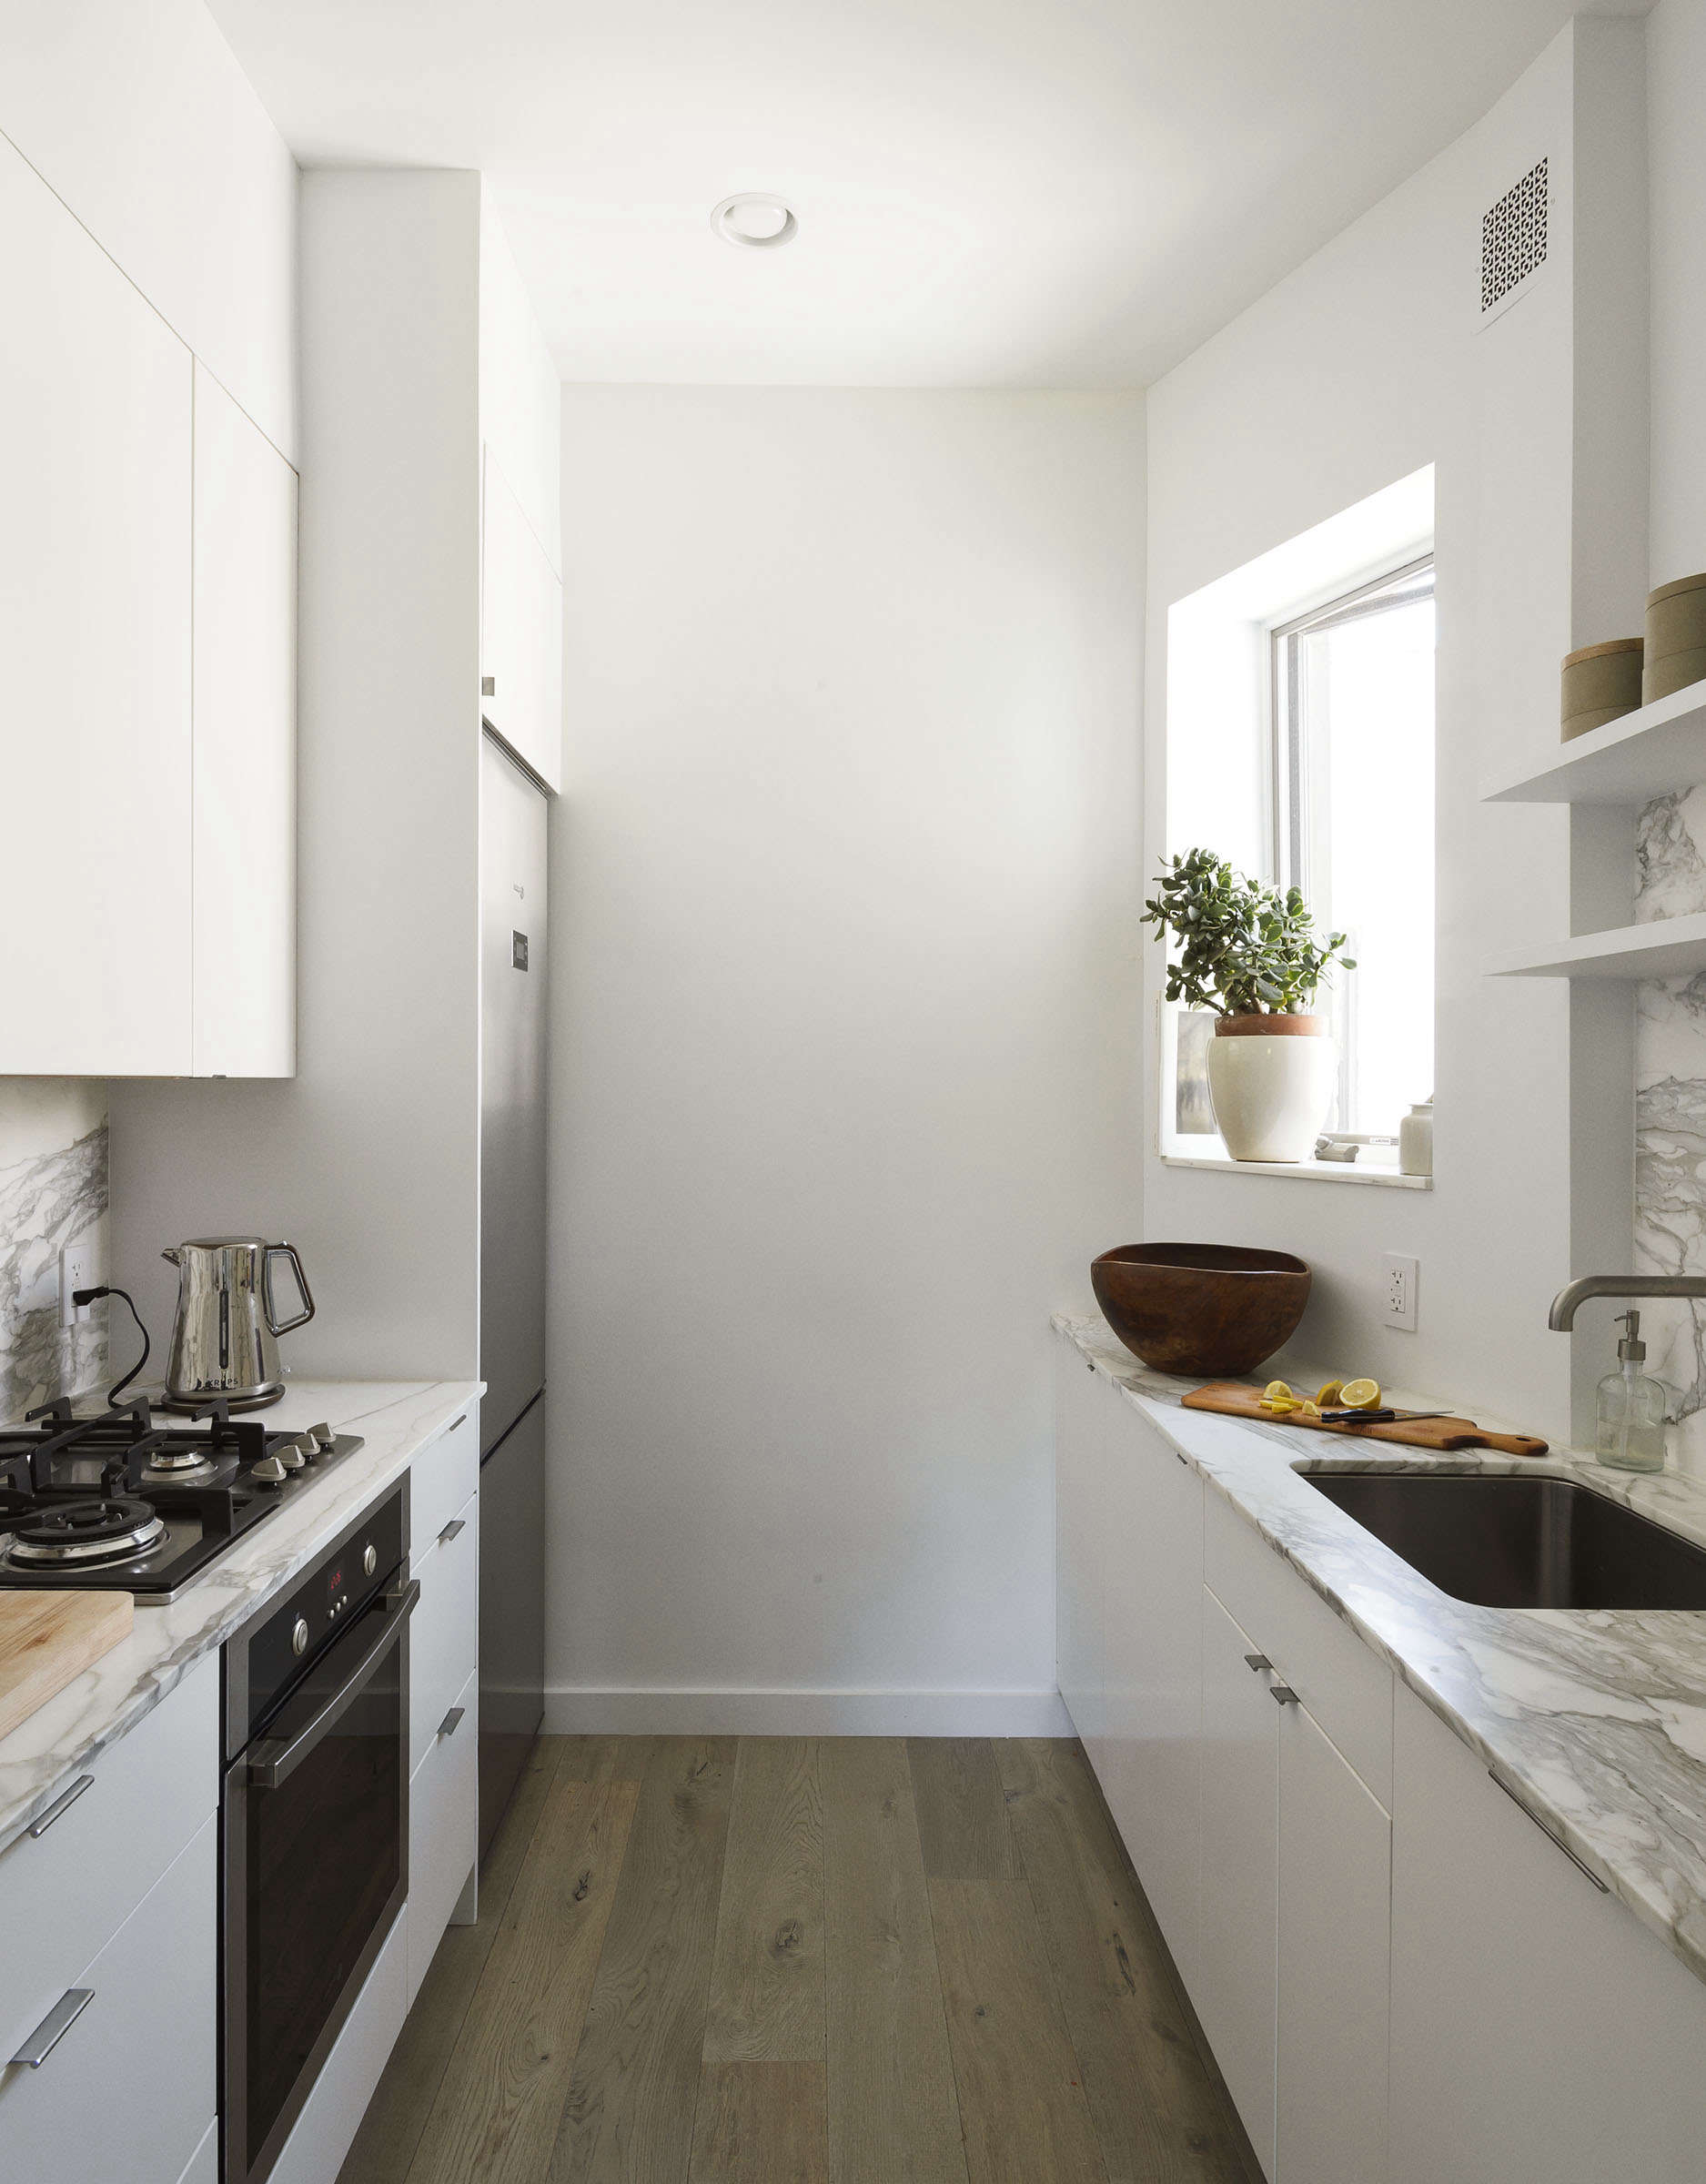 Living Large In 675 Square Feet Brooklyn Edition